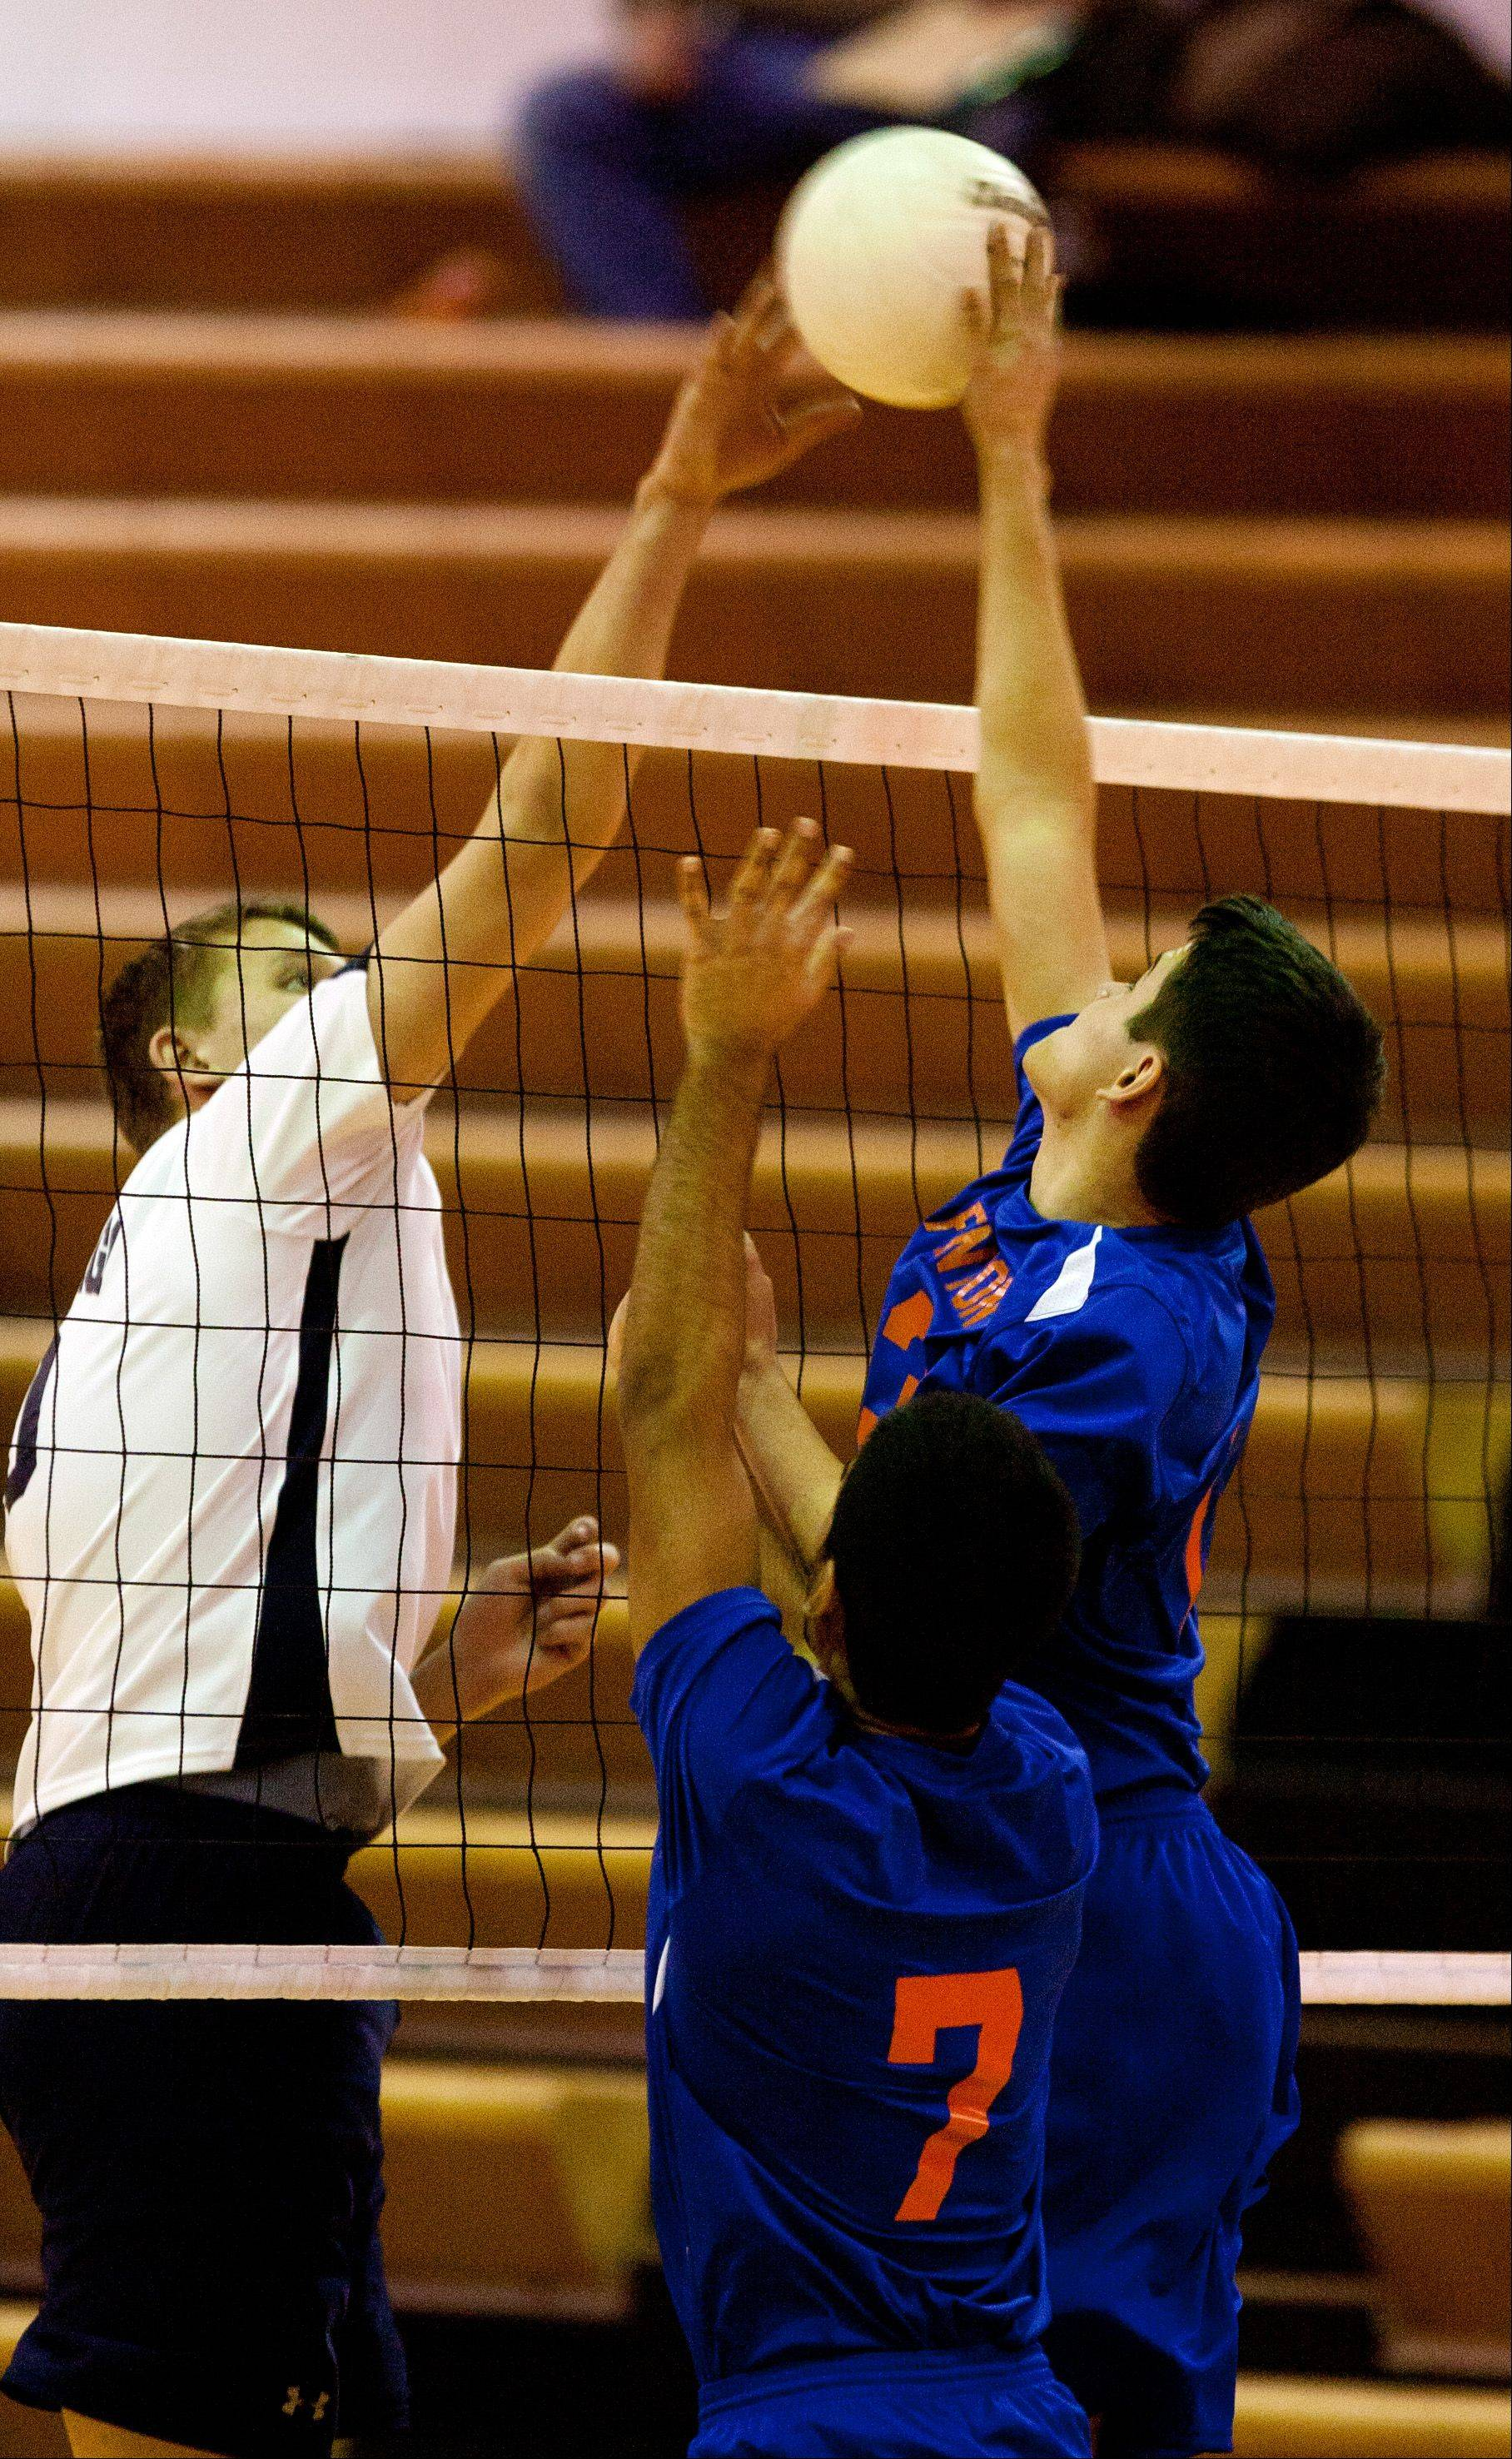 West Chicago's Joe Pinkevich, left, battles Fenton's Nathan Rivera, right, at the net during boys volleyball action Tuesday.